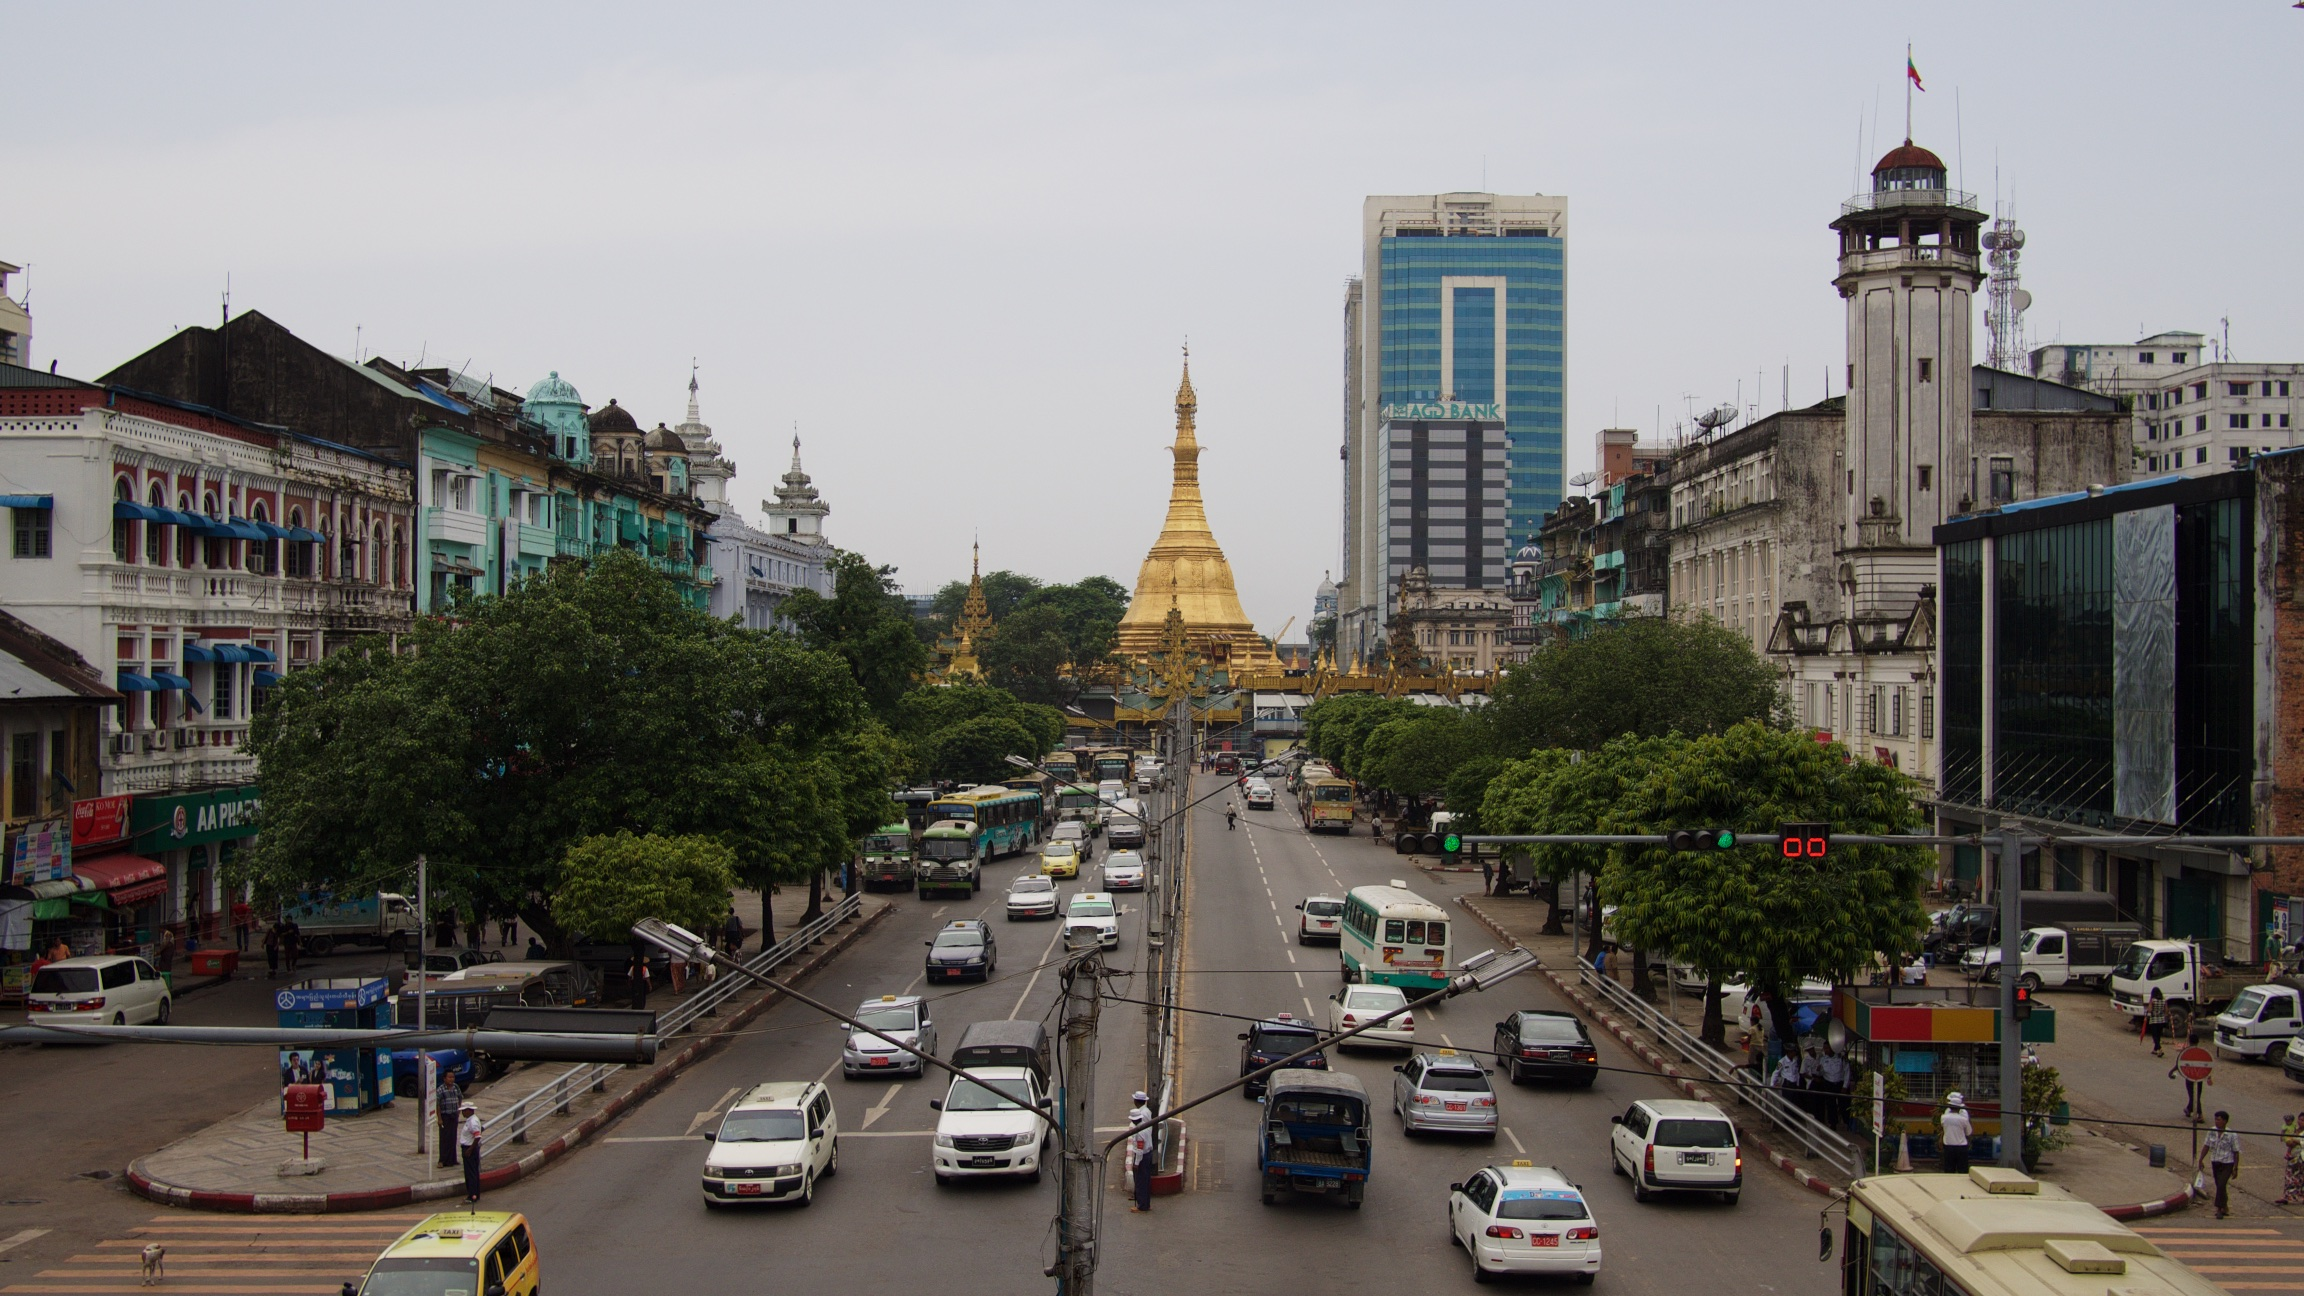 sule pagoda in the middle of downtown